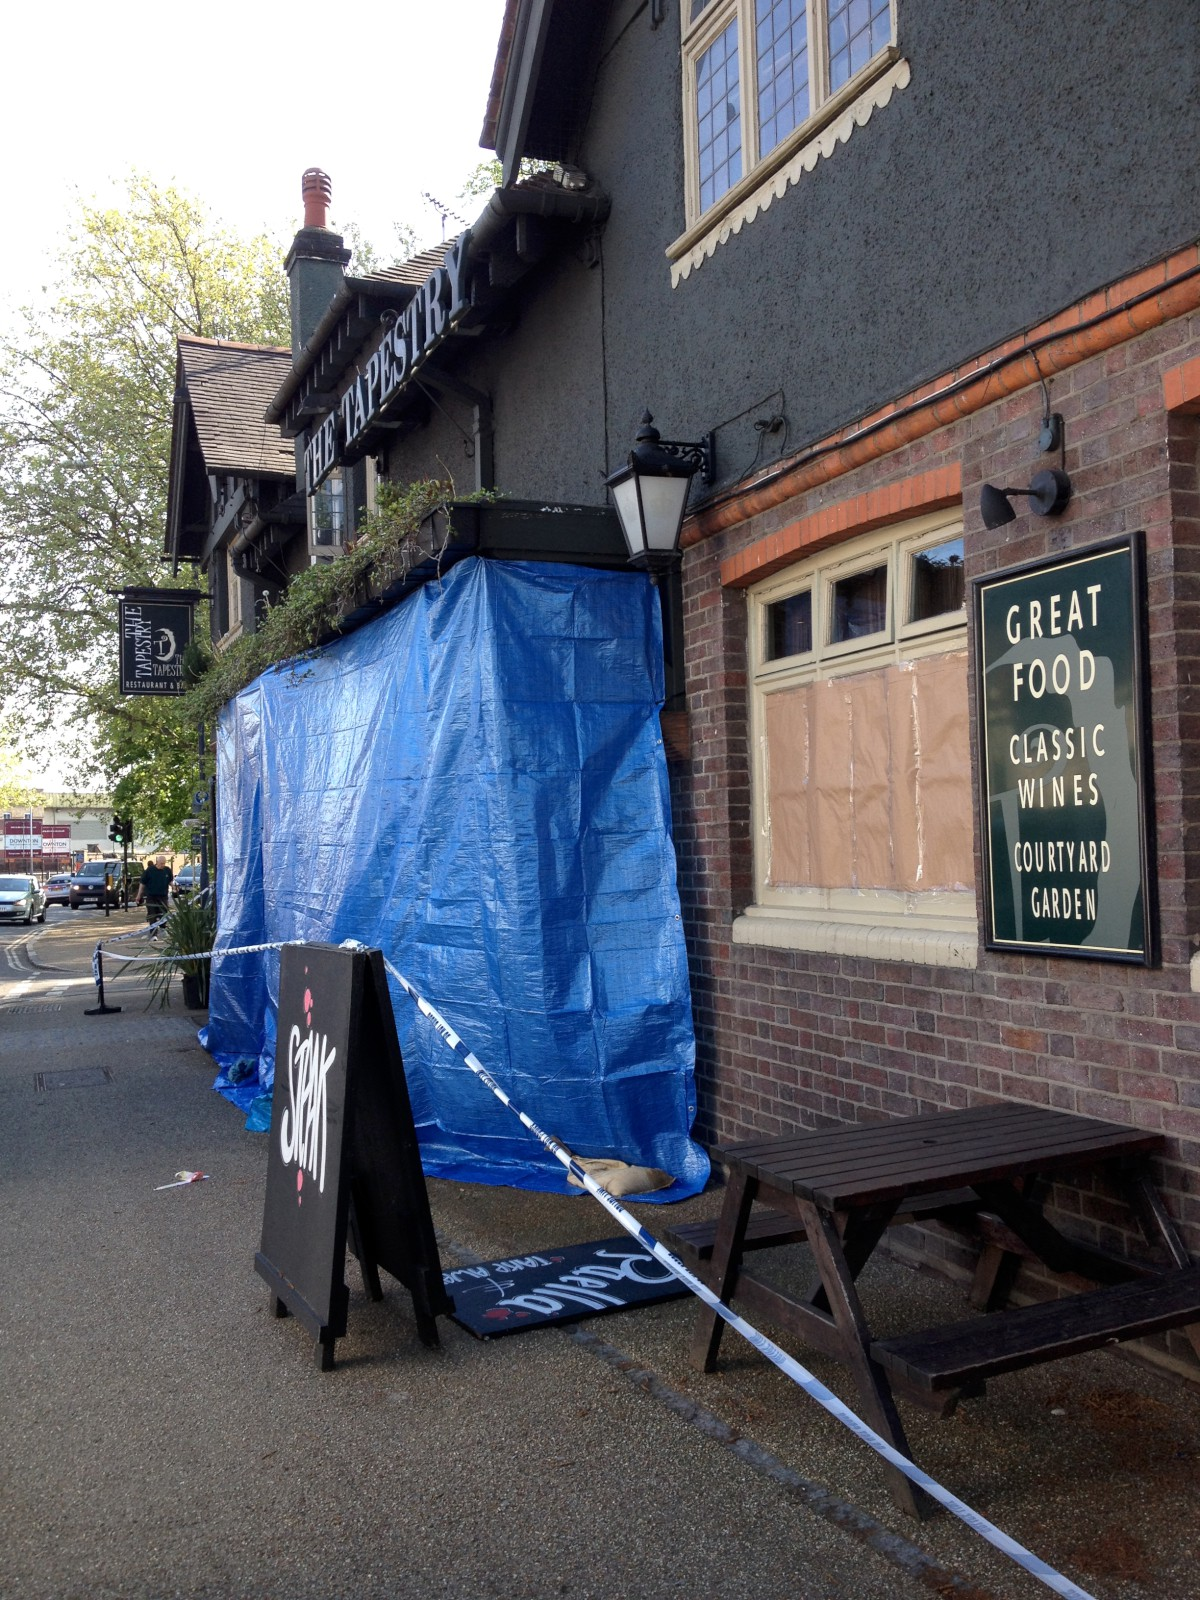 Owner shocked at death of regular customer after stabbing inside Mortlake tapas bar